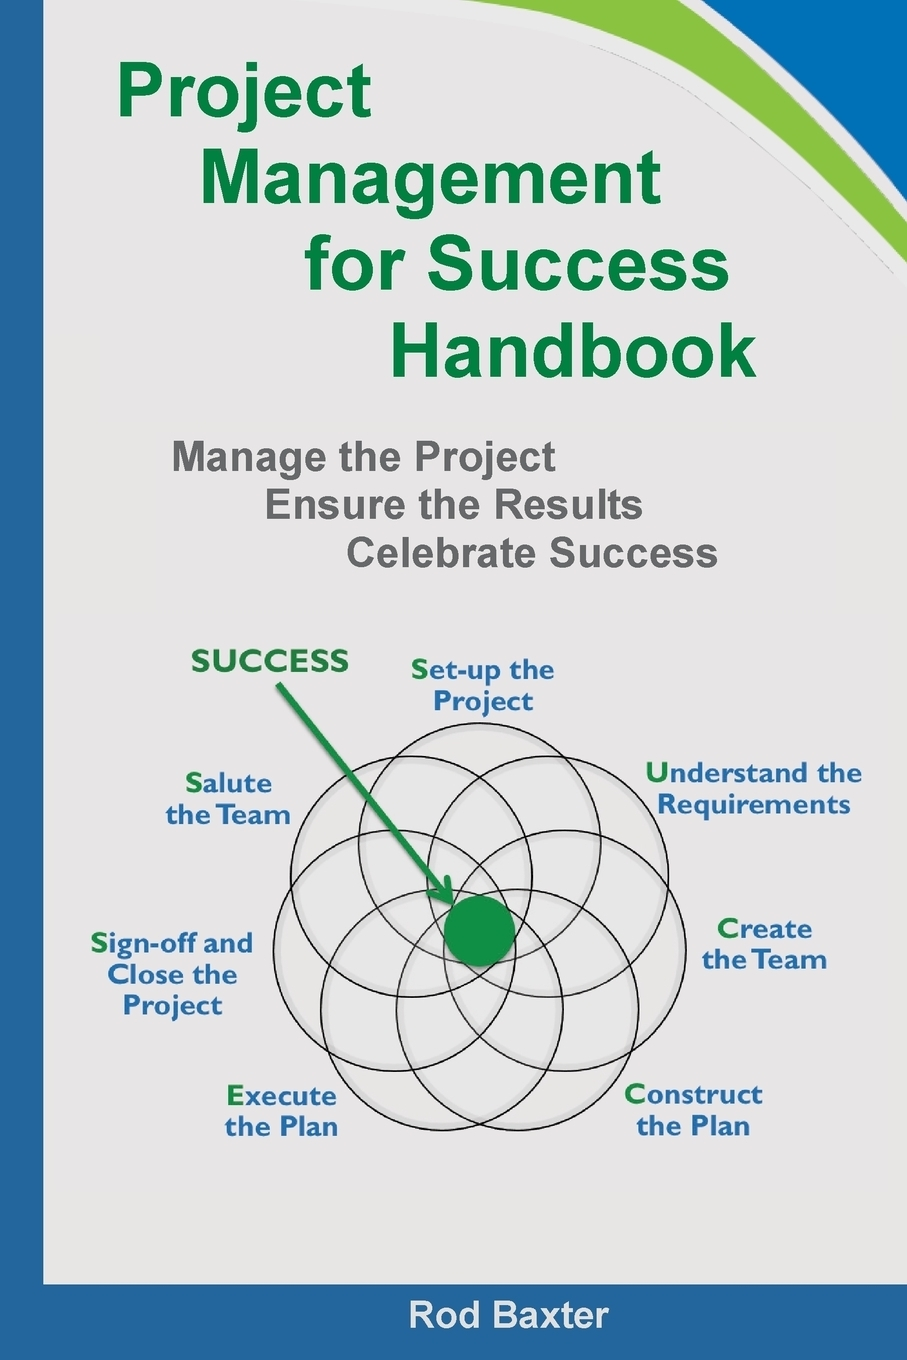 Project Management for Success Handbook. Manage the Project - Ensure the Results - Celebrate Success